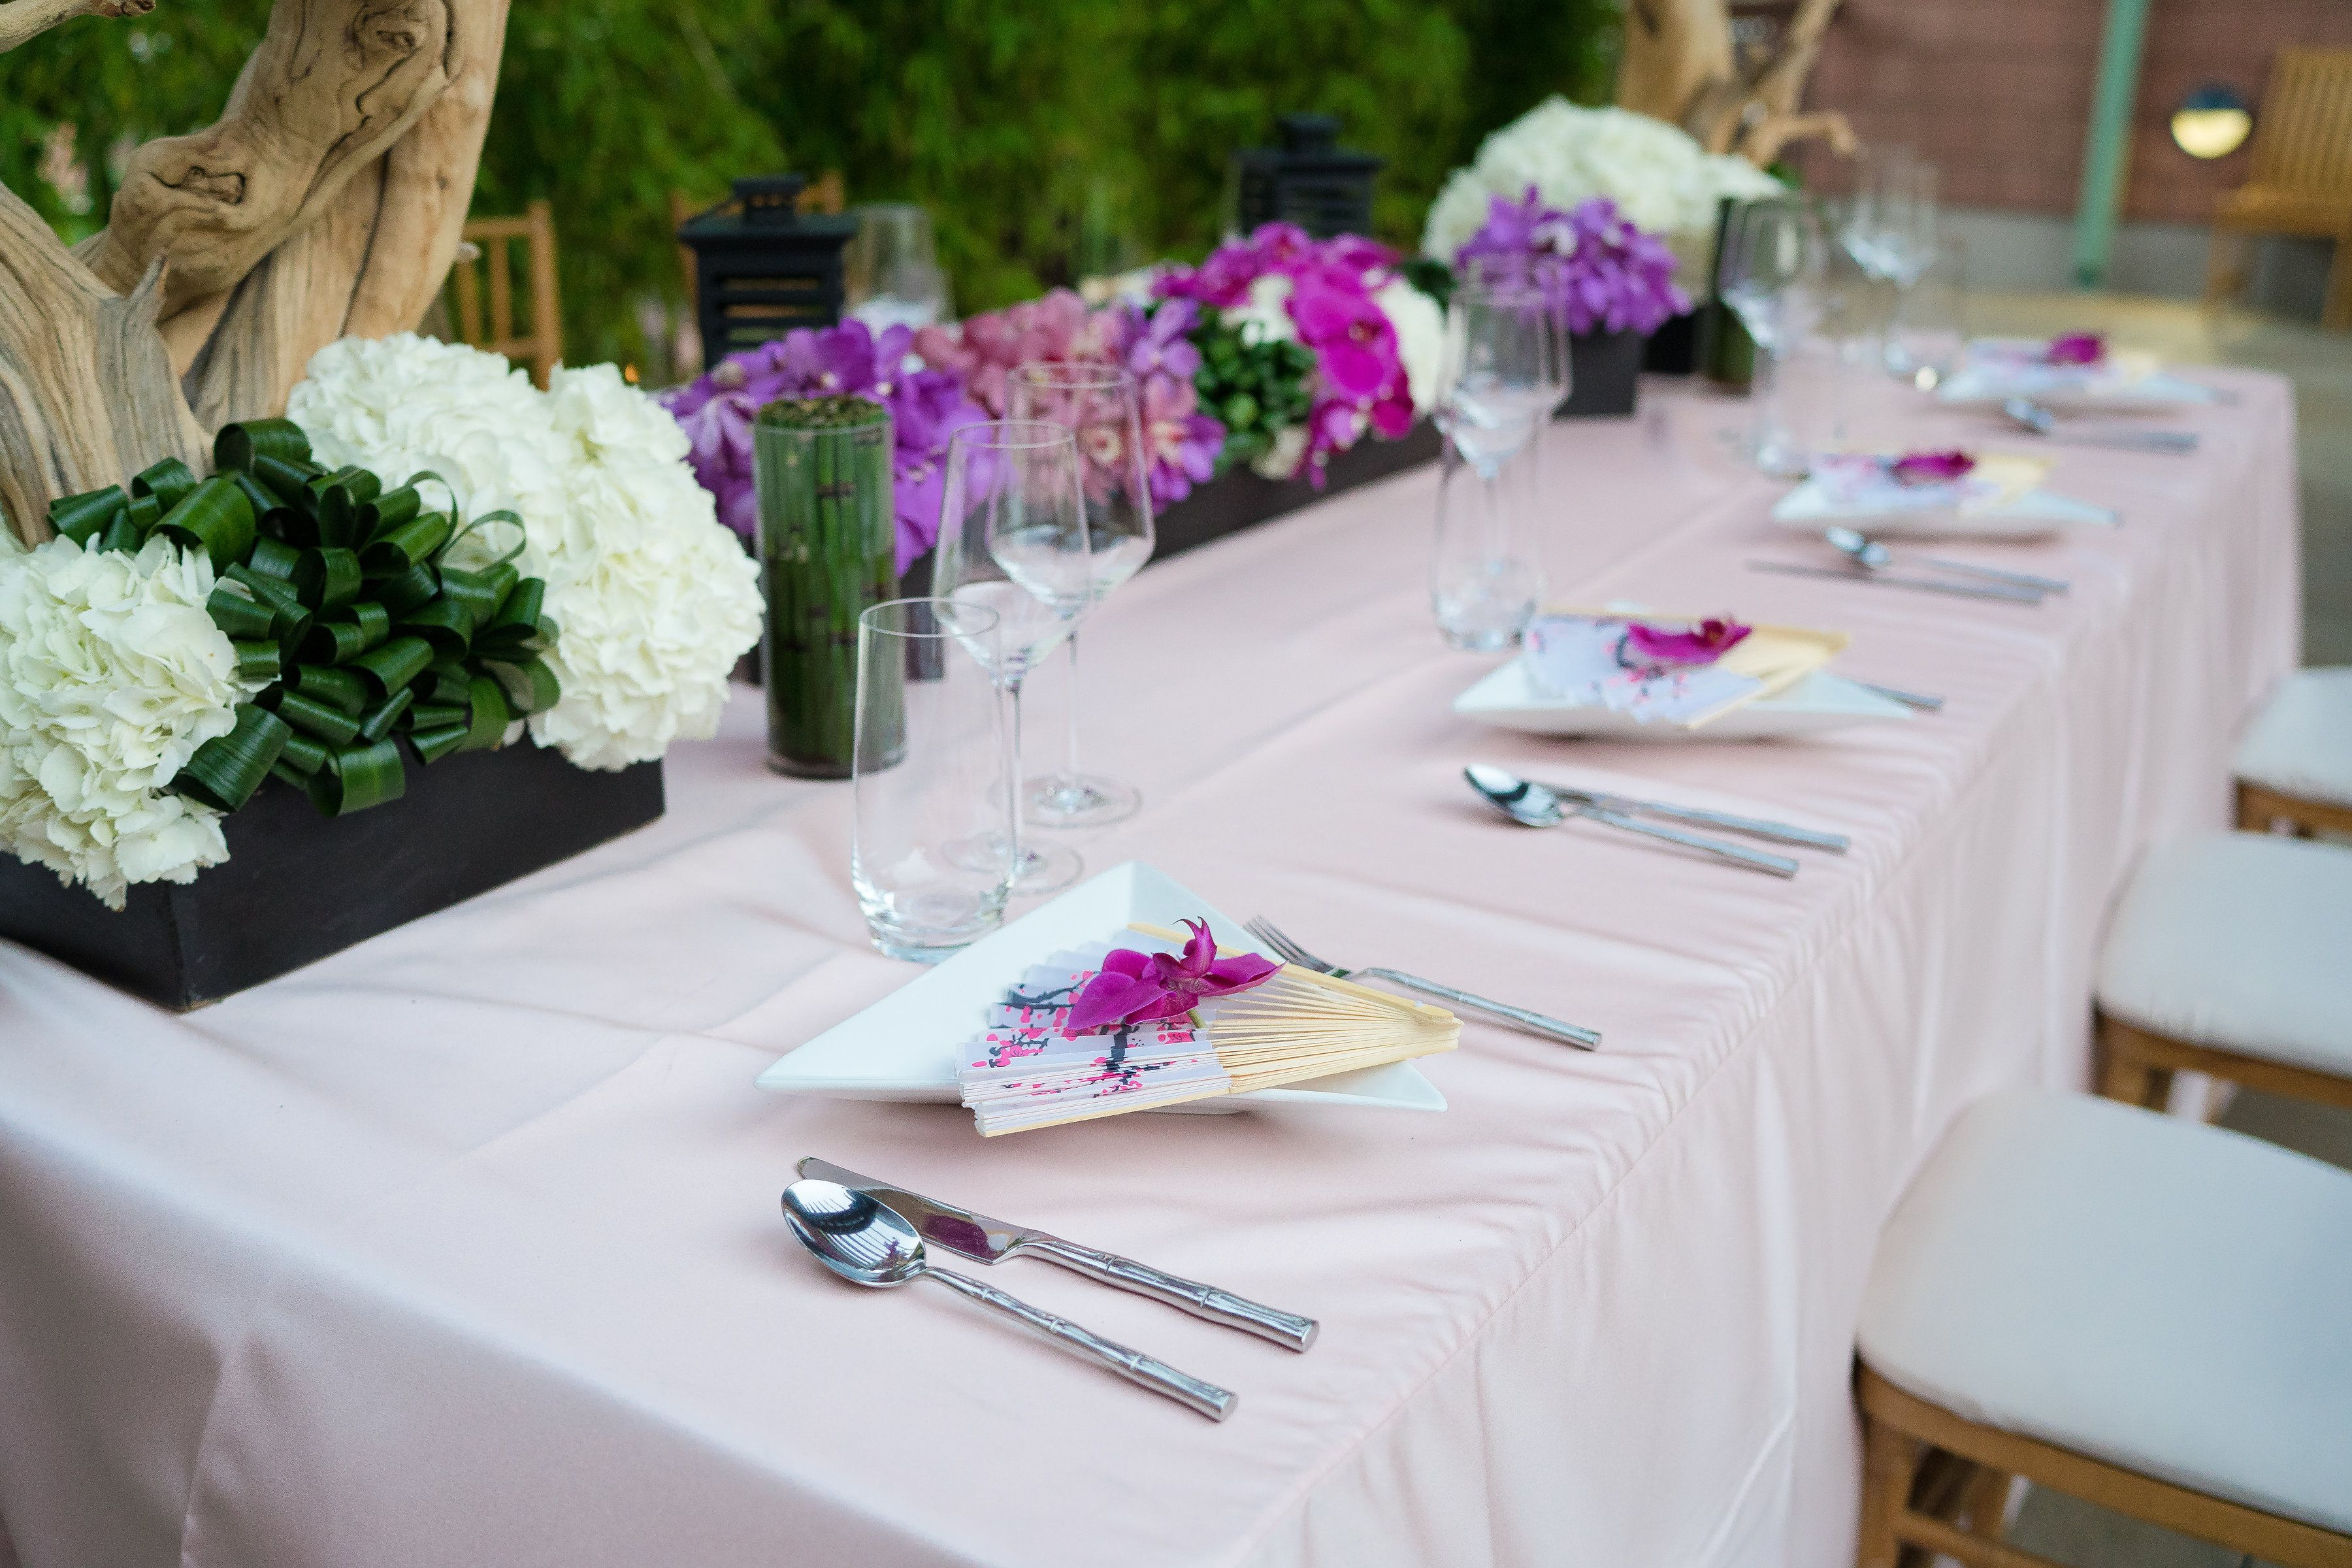 Mulan inspired table setting in a beautiful outdoor reception space ...